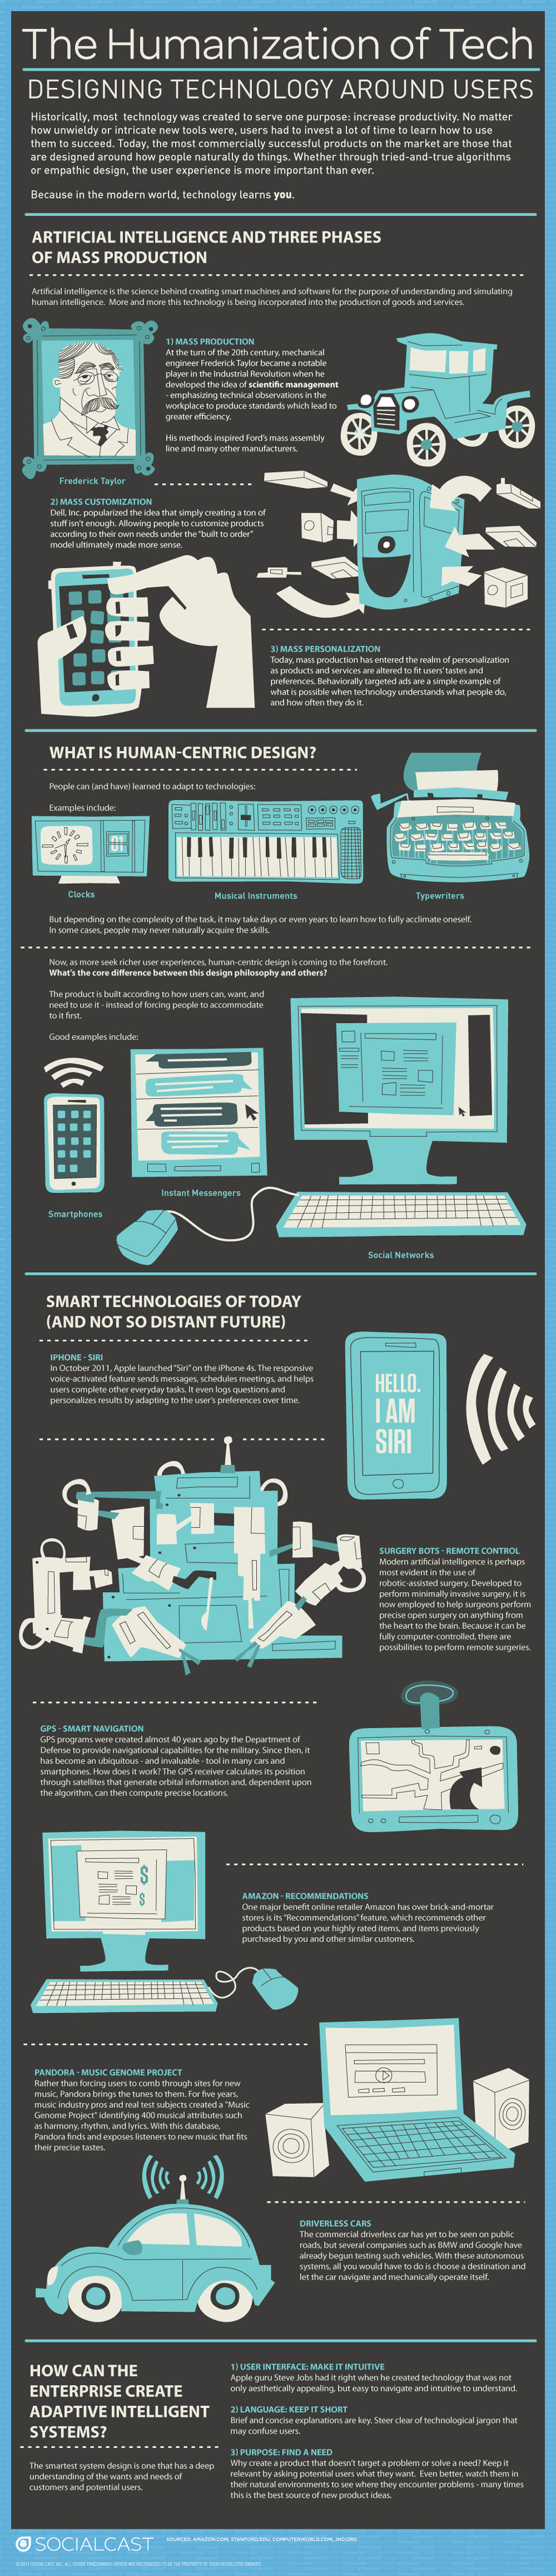 Infographic: The Humanization of Tech —  Designing Technology Around Users